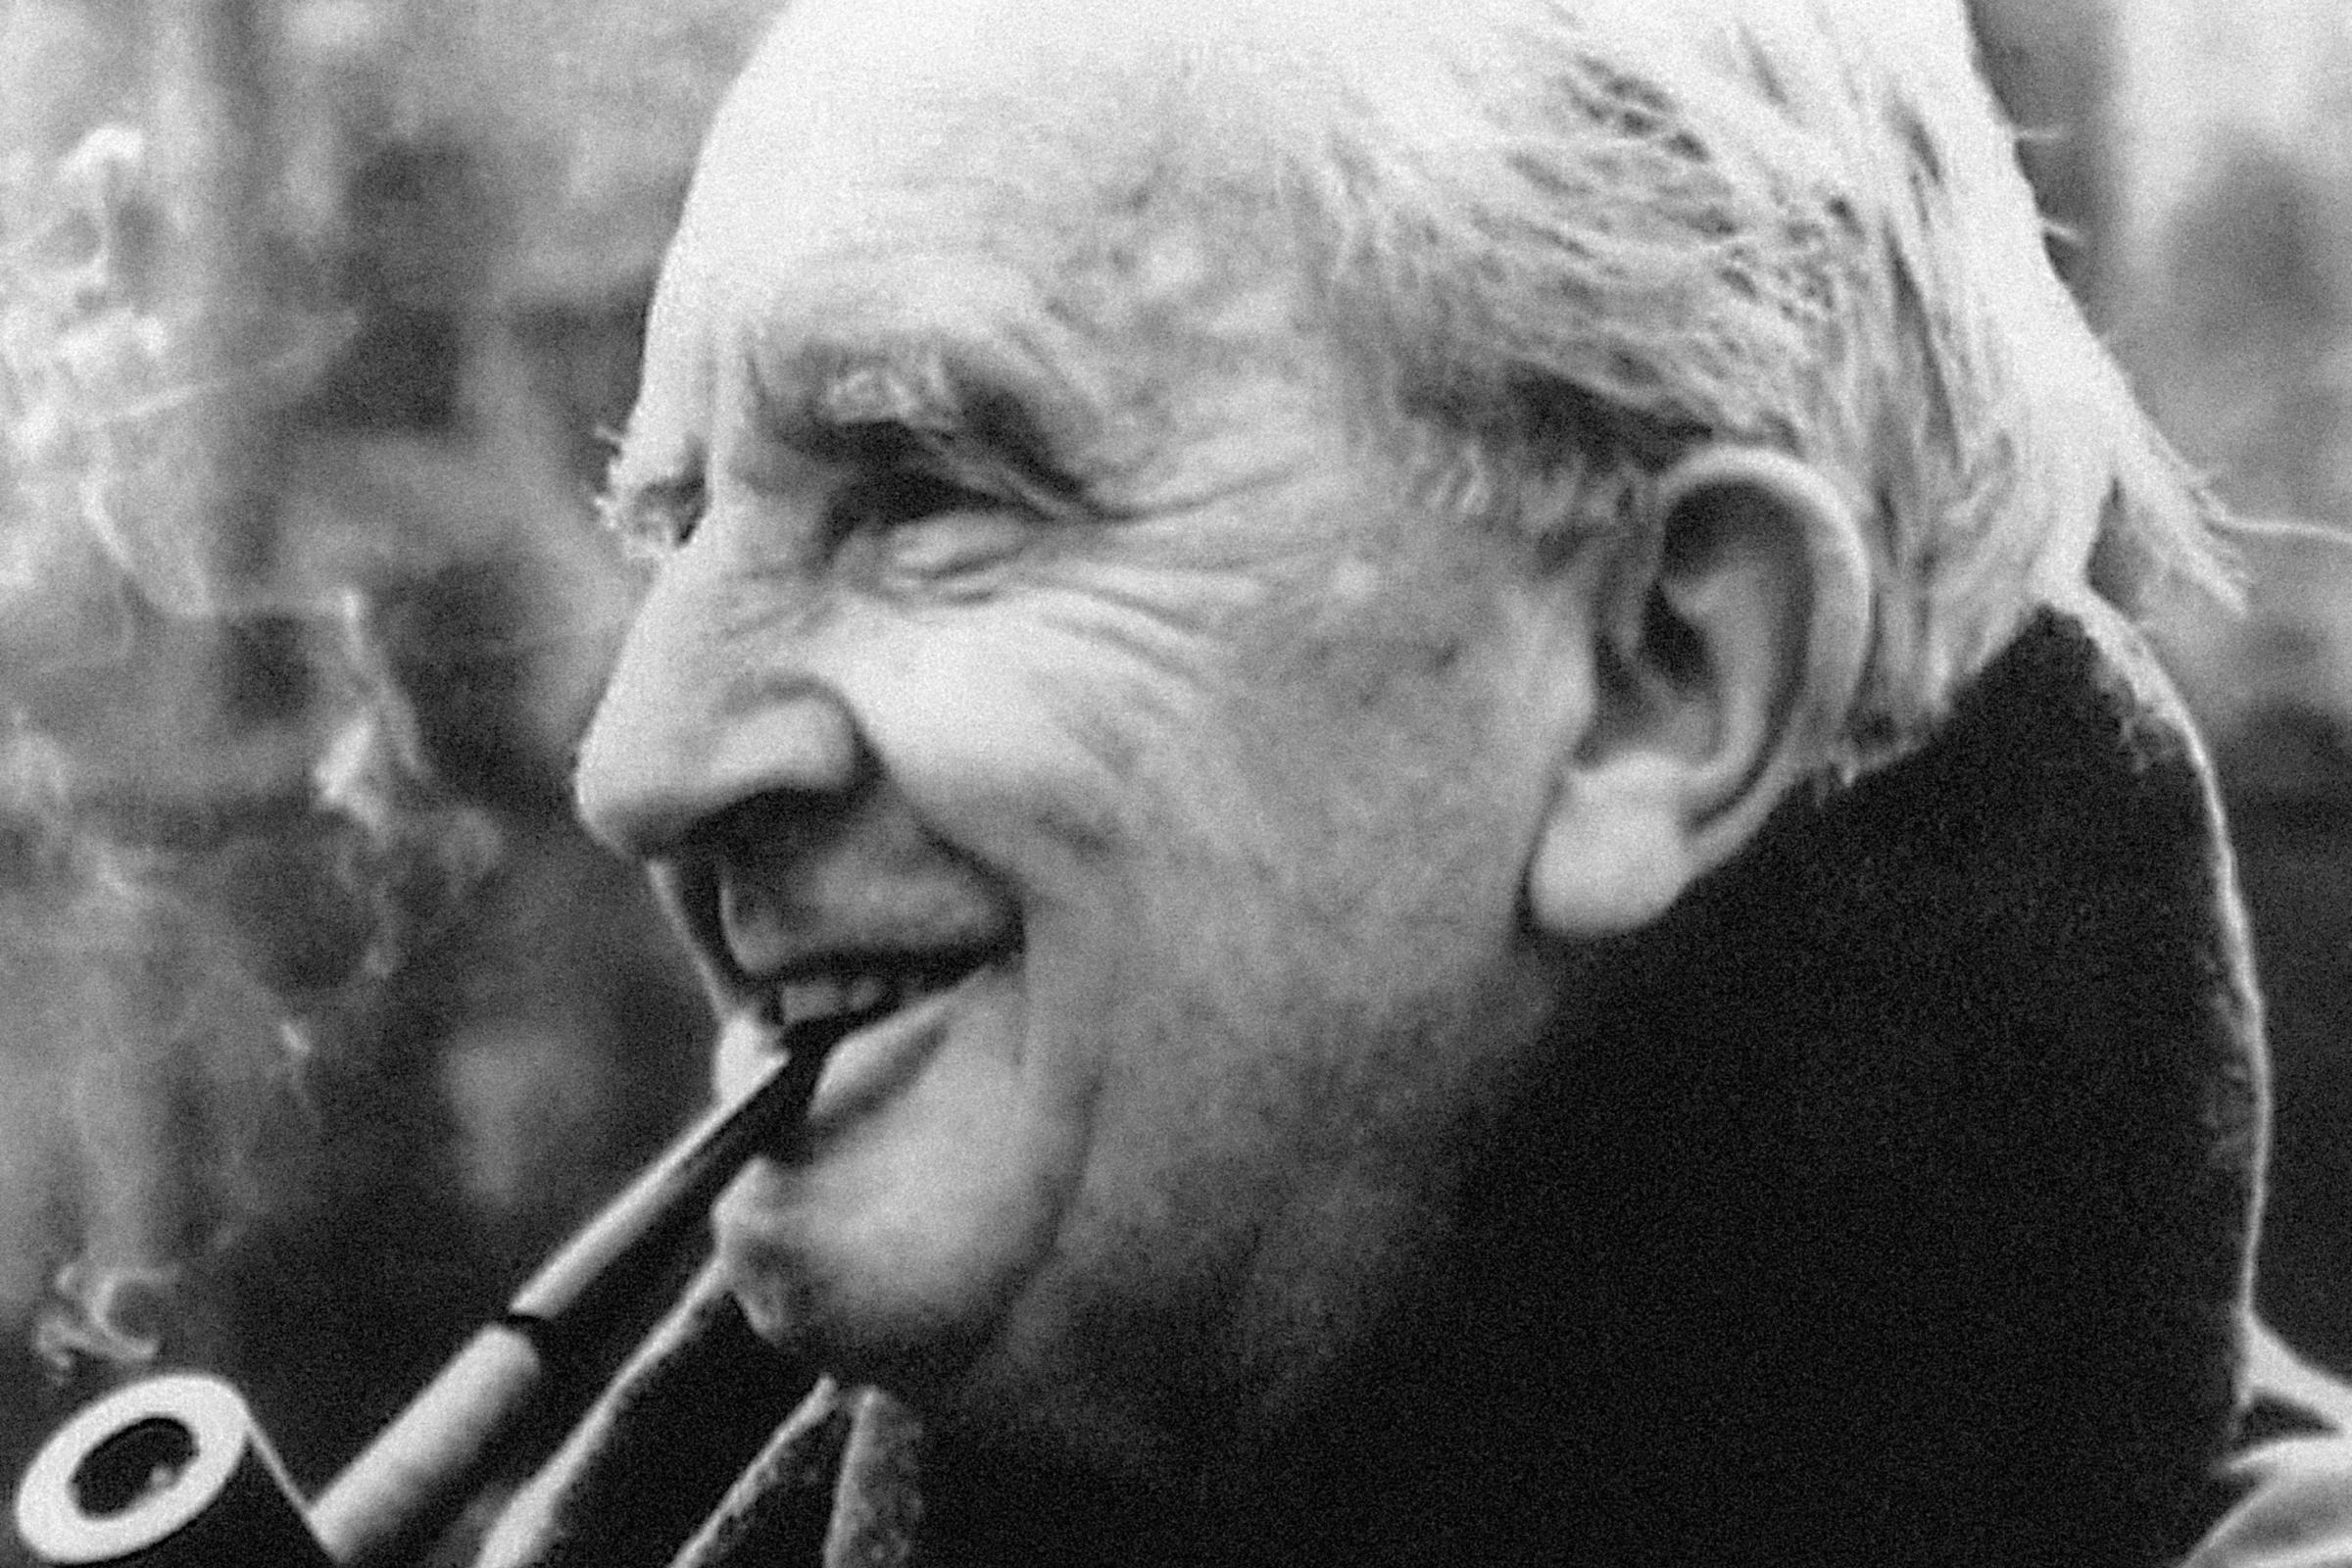 JRR Tolkien is the subject of a new biopic